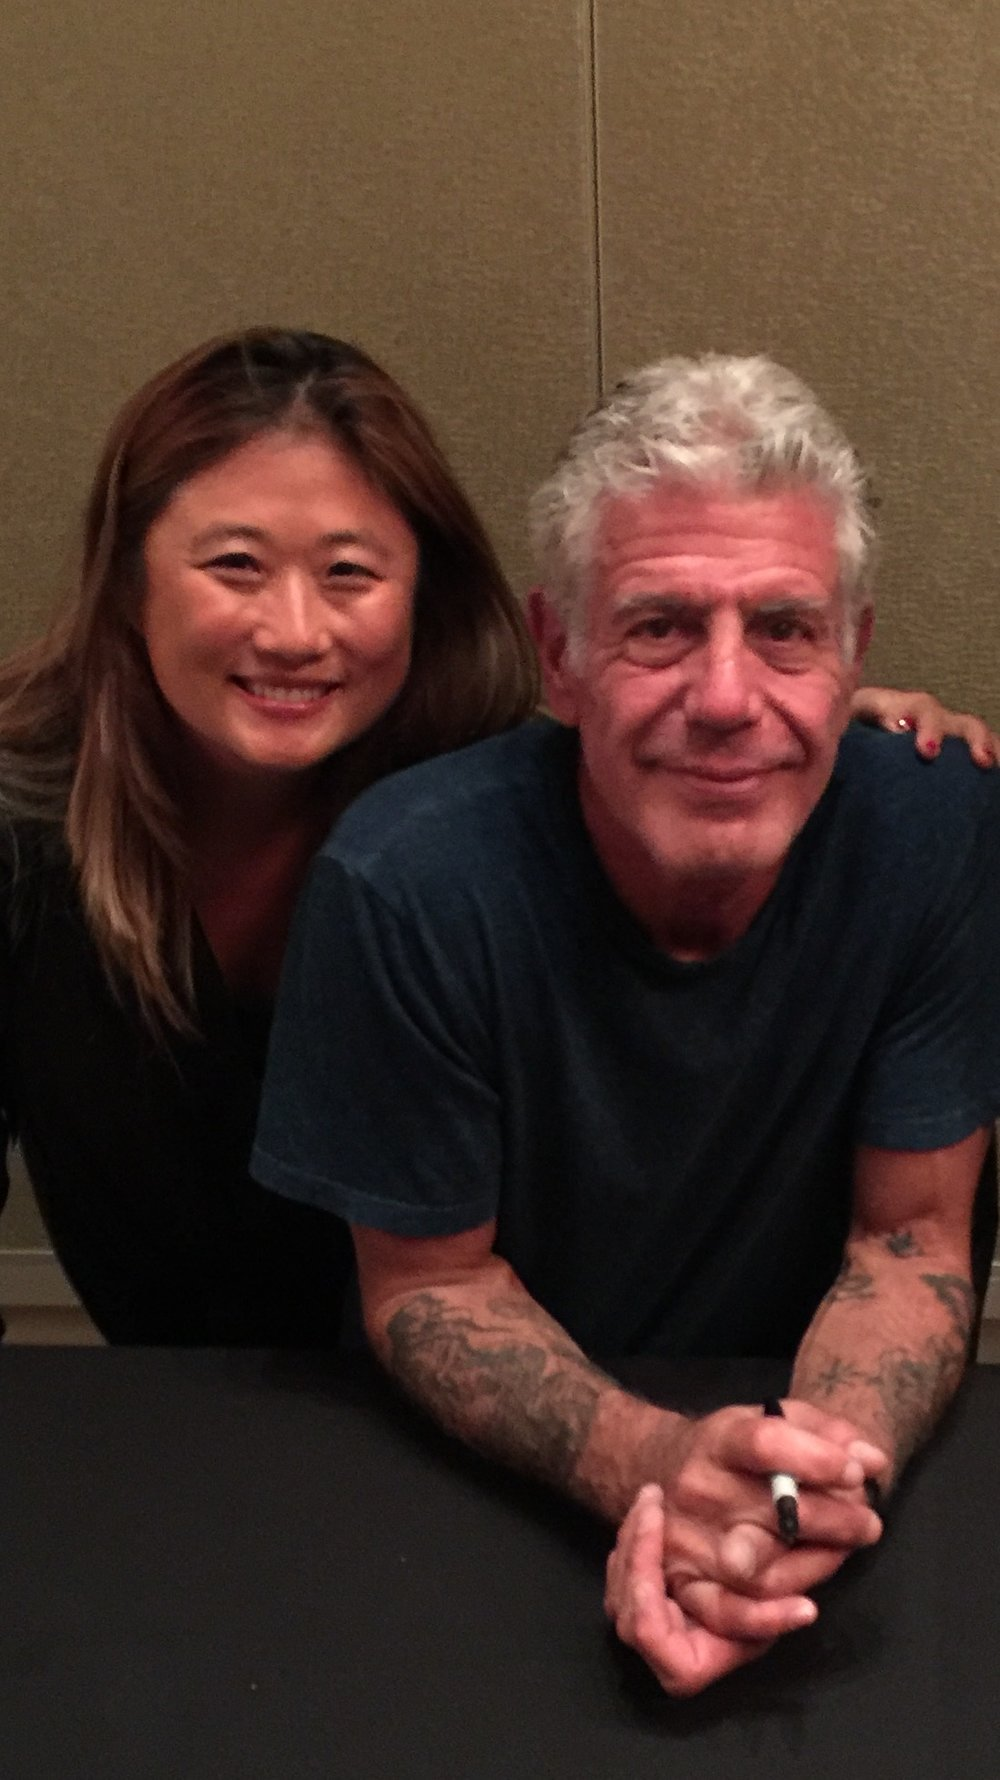 Anthony Bourdain and WishPoints wish you will travel to discover hidden gems, local faves, and unique experiences through WishPoints.